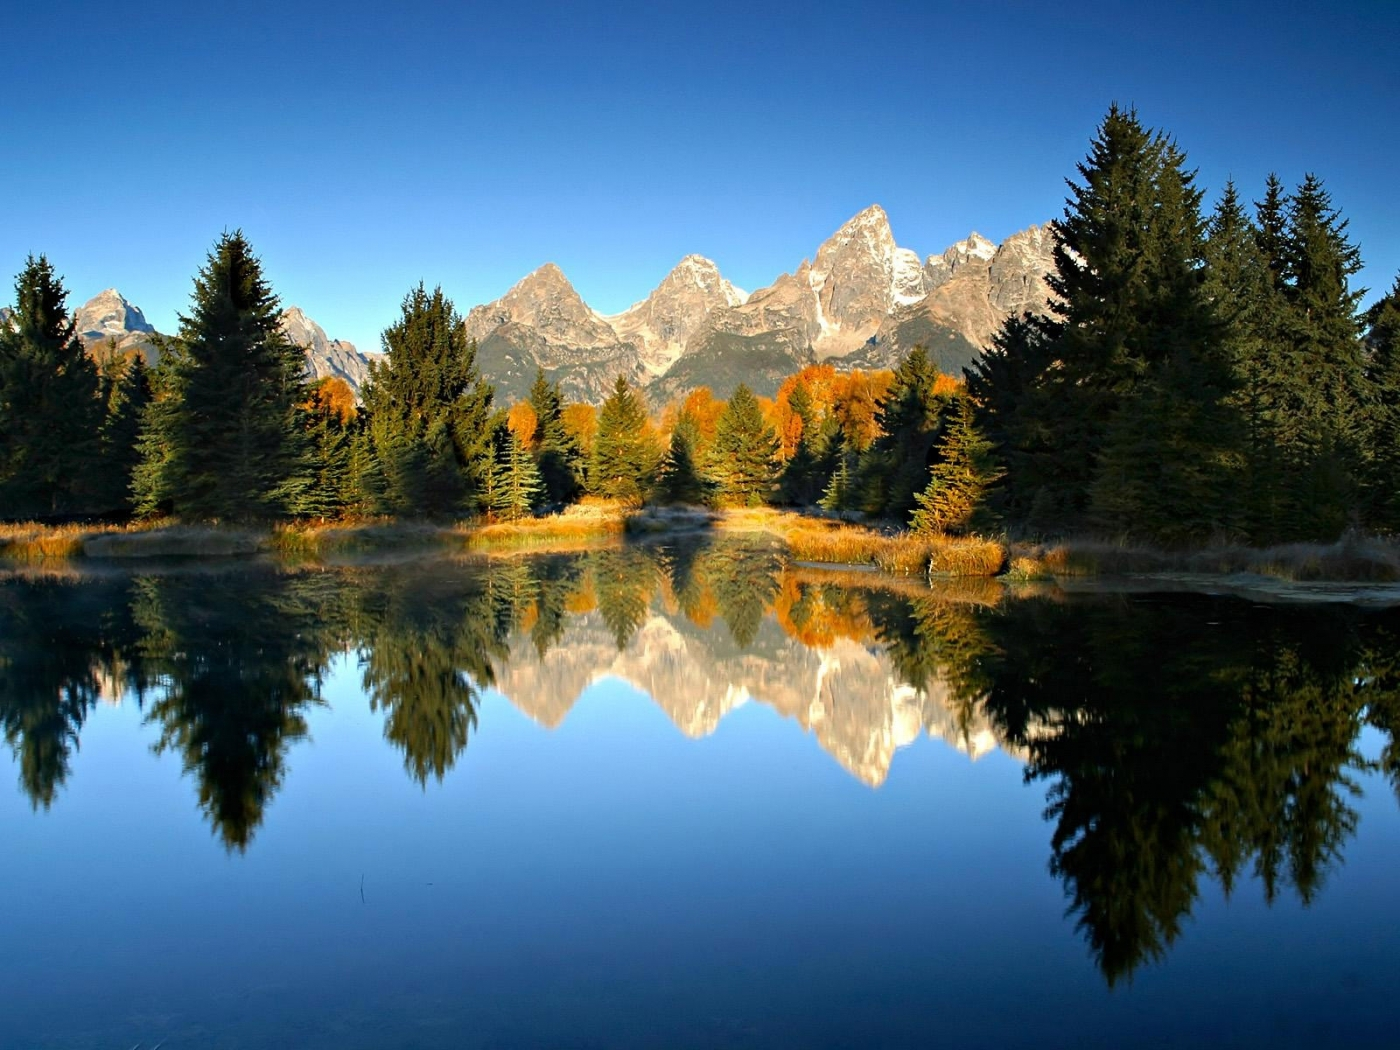 Download mobile wallpaper Lakes, Mountains, Landscape for free.